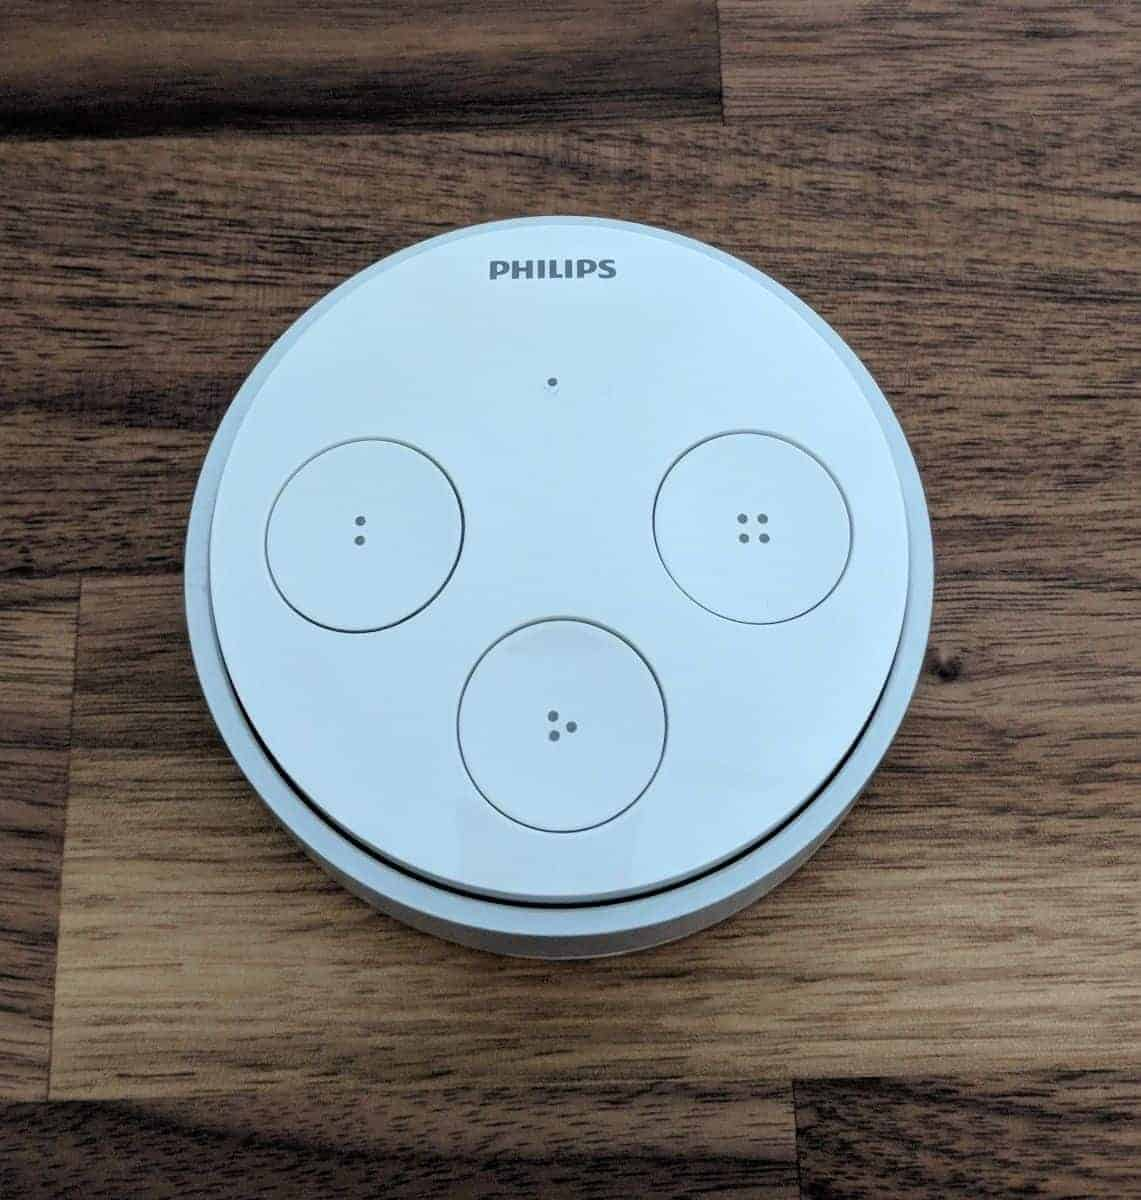 Philips-Hue-Tap-Photos-06 Philips Hue Review Part 2